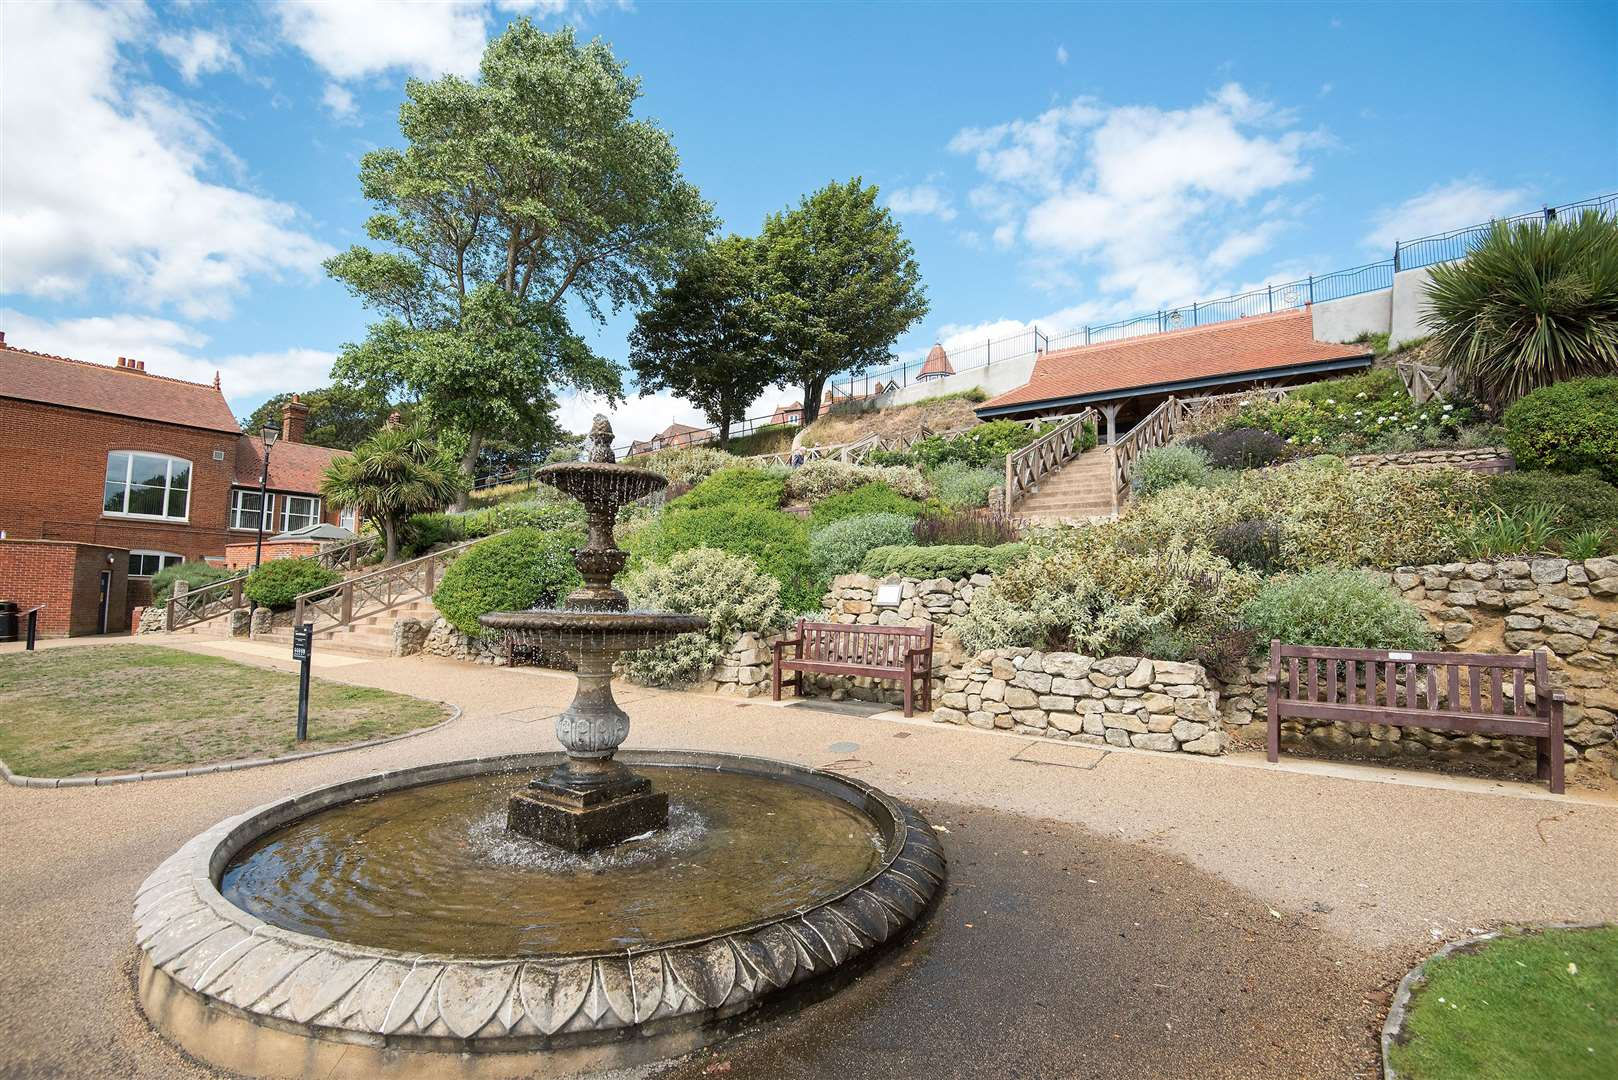 Felixstowe Seafront Gardens also achieved the Green Heritage Site Accreditation. Picture by Mark Westley